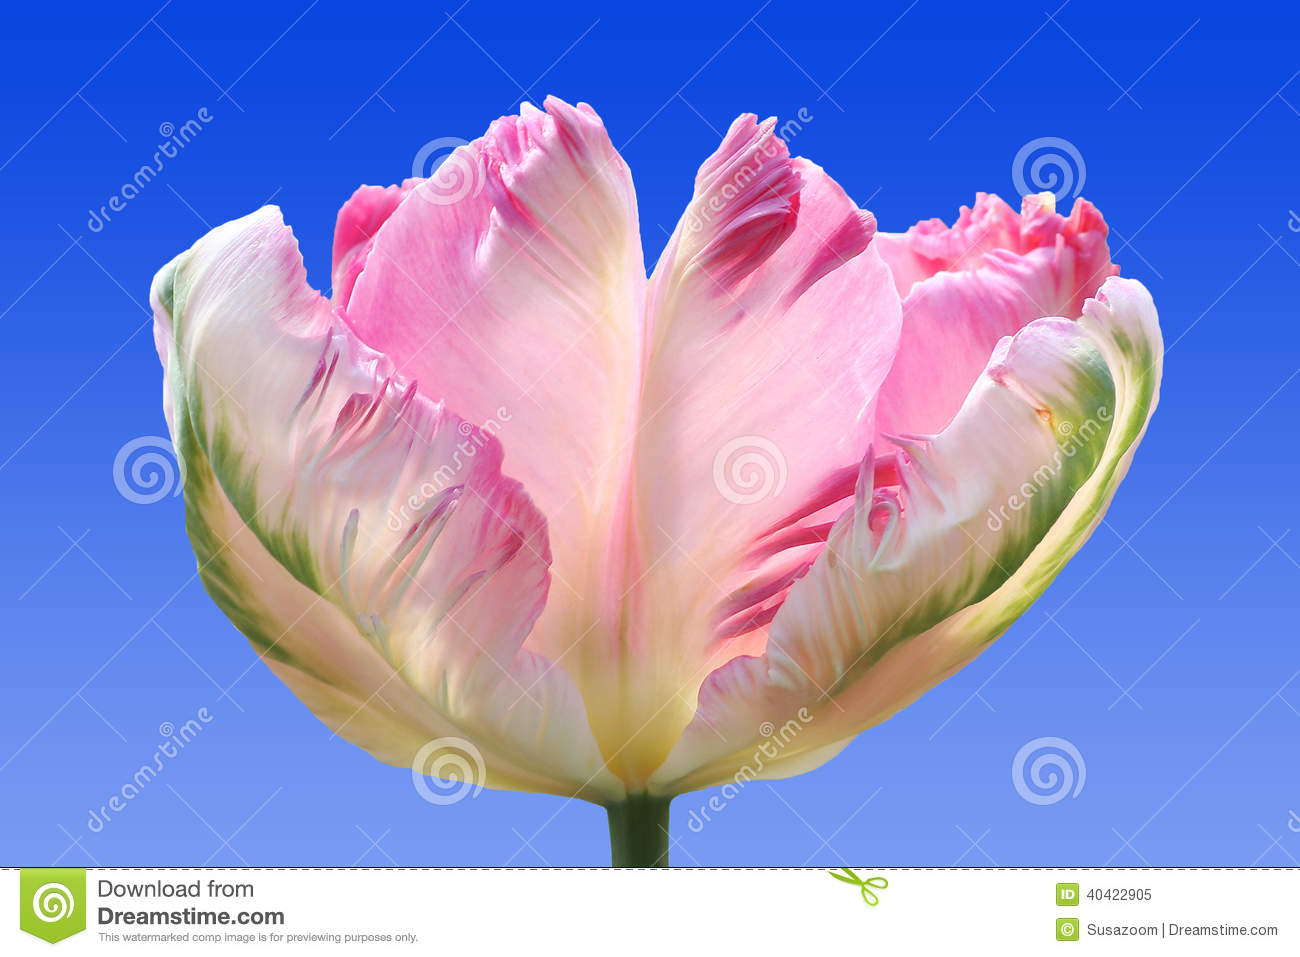 Beautiful parrot tulip, tricolor, against blue sky